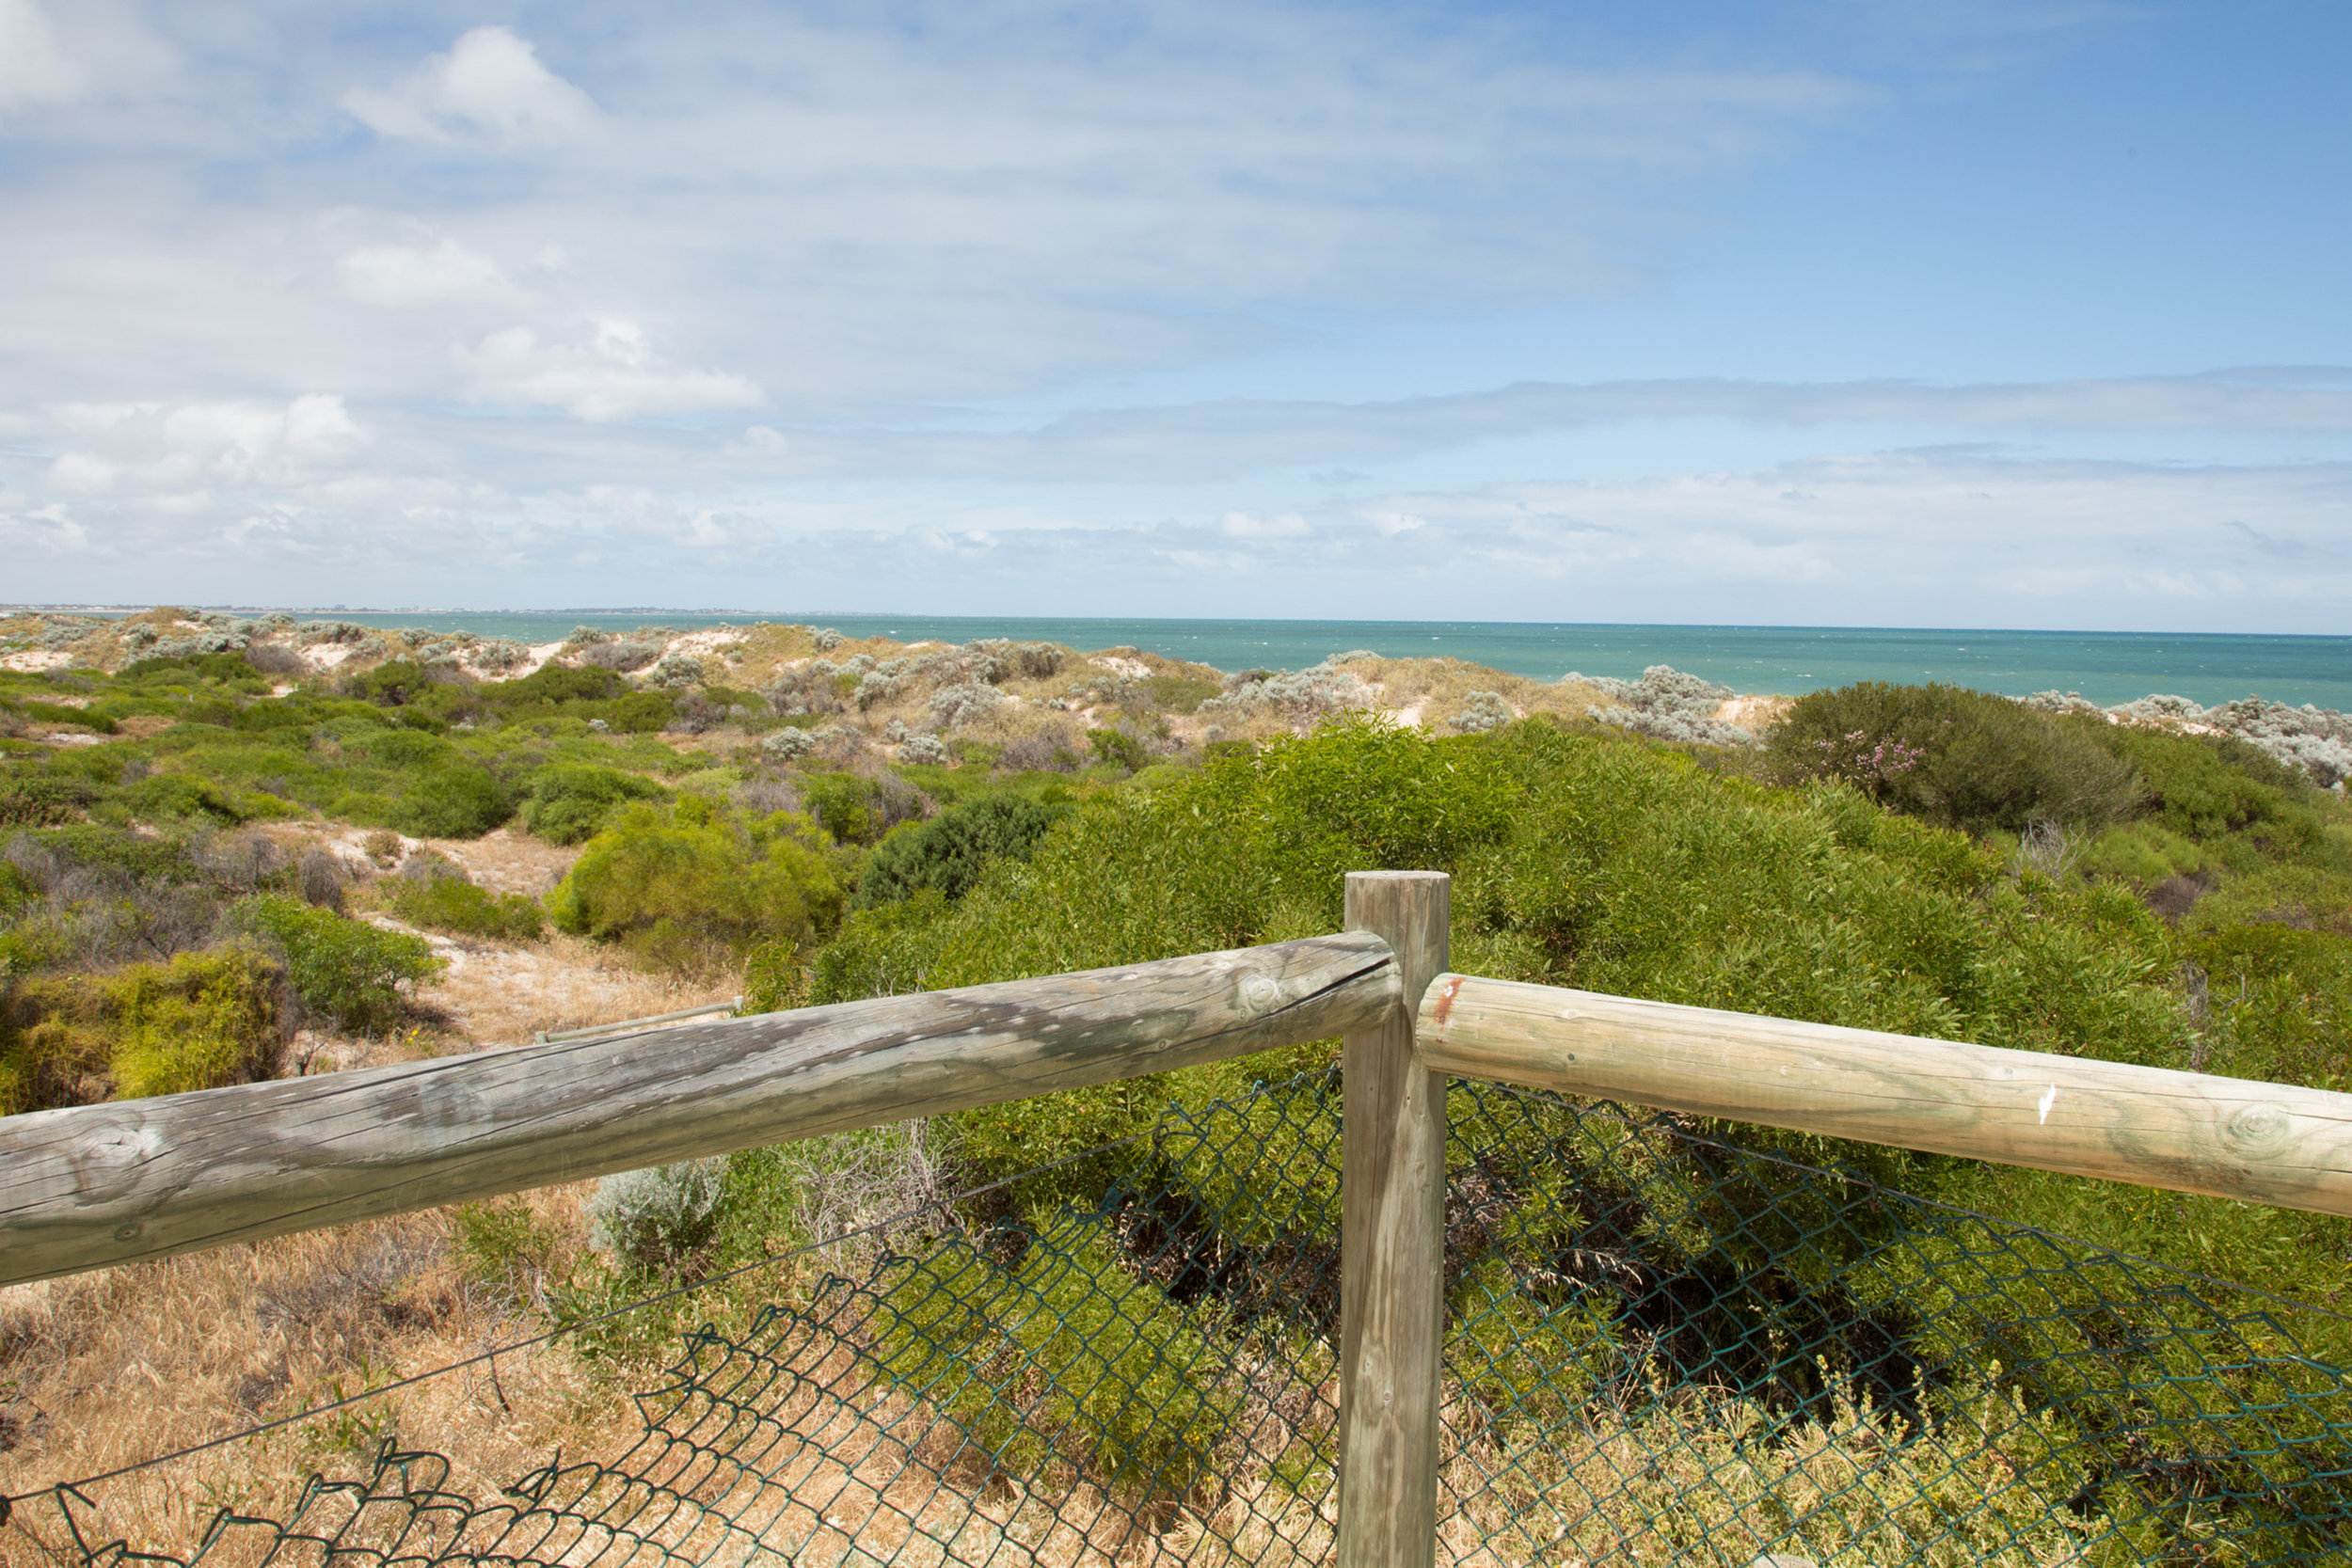 Plate 11: Lookout next to the carpark at the end of Dampier Drive